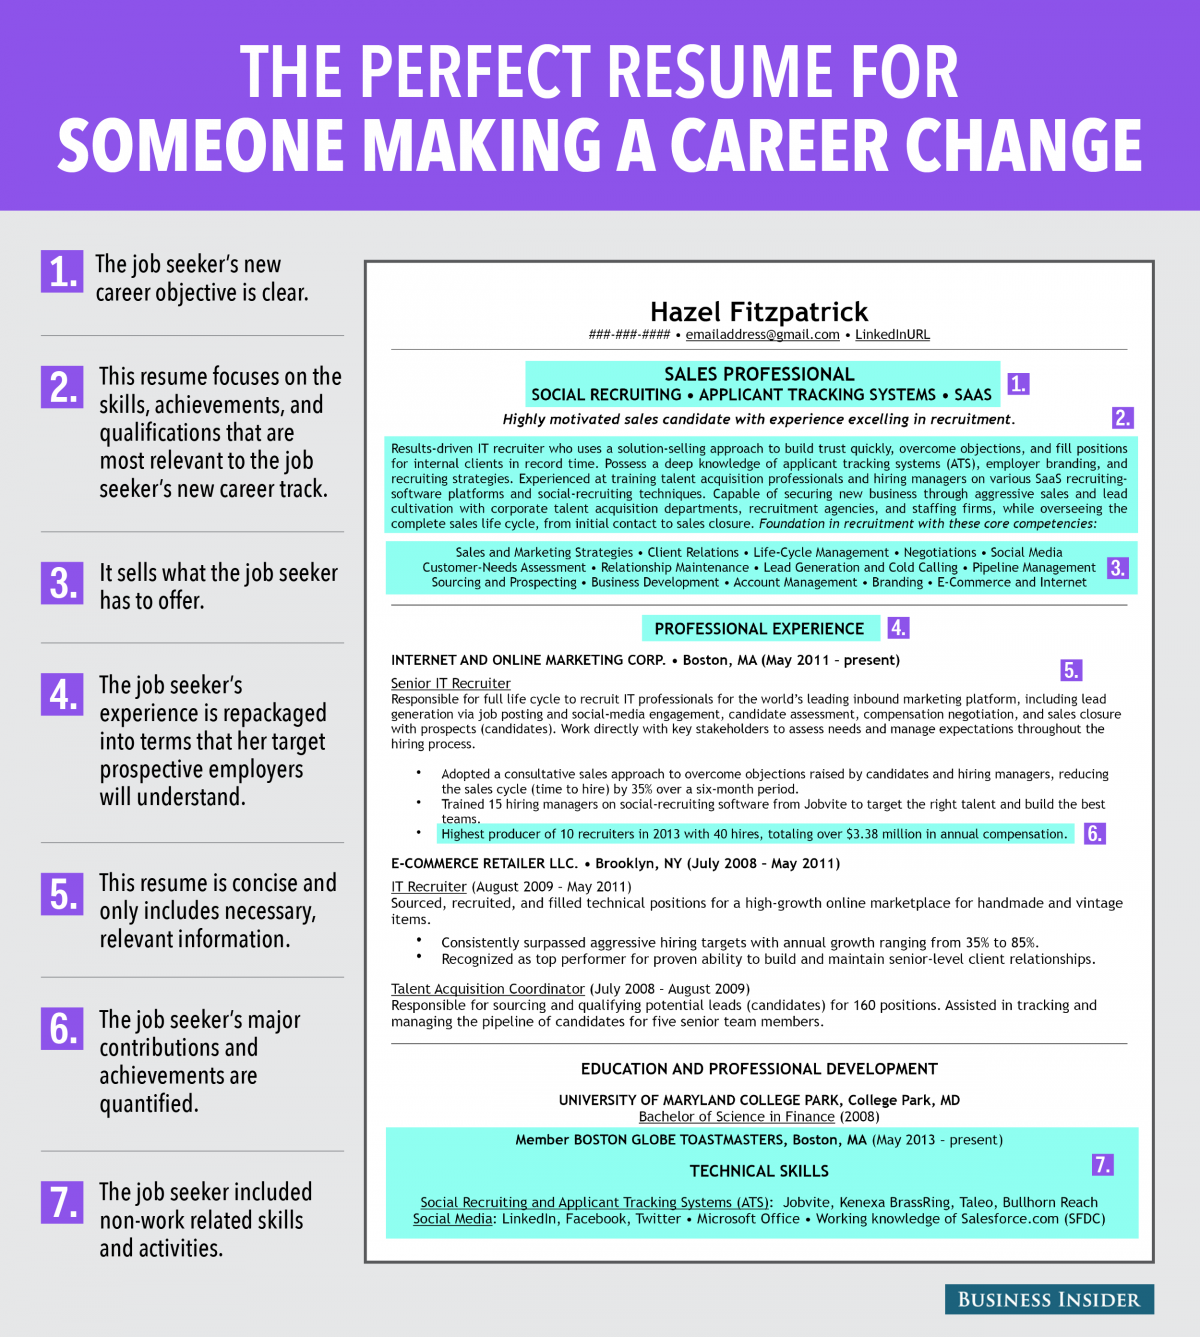 Career Change Resume Sample Career Change Resume Sample 2016 Sample Resumes